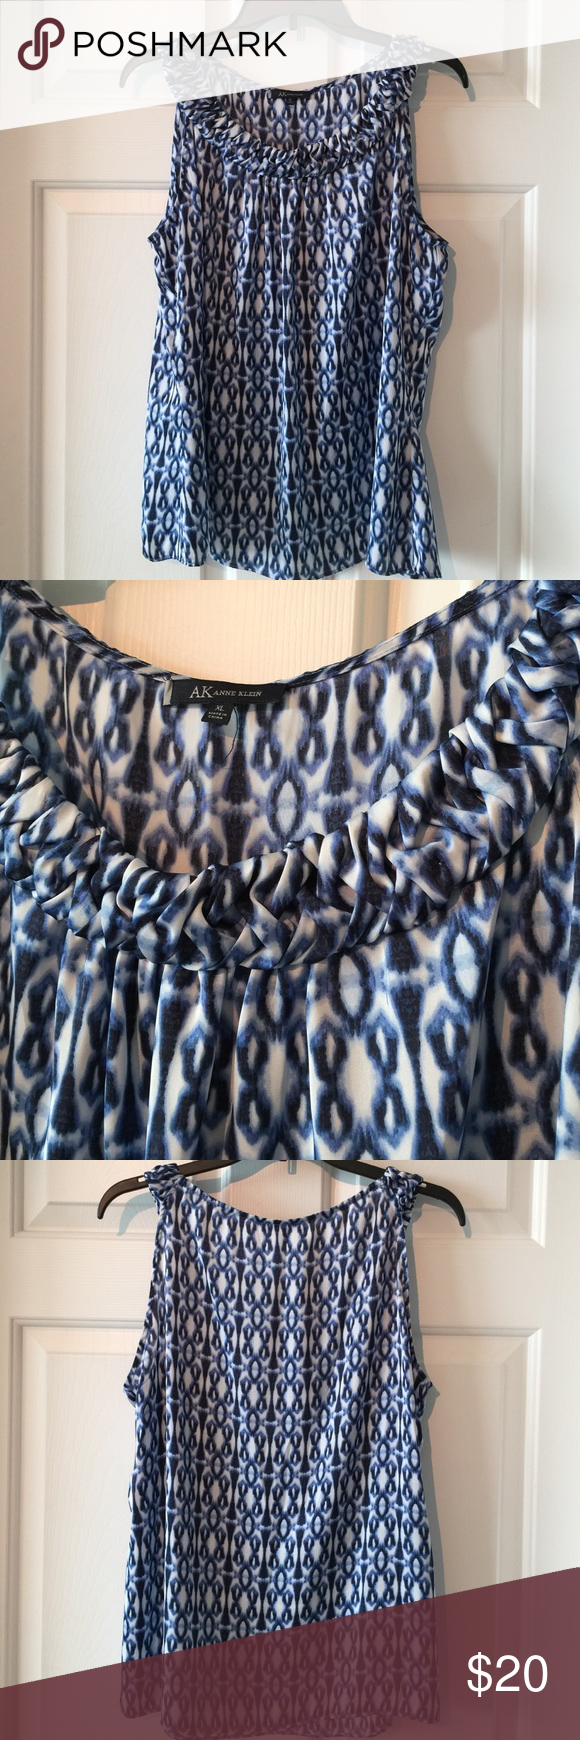 Blue and white patterned blouse size XL This lovely Anne Klein sleeveless blouse is soft and silky. Amazing braid like textured neckline. Gorgeous blue and white pattern. Size XL fits true. Anne Klein Tops Blouses